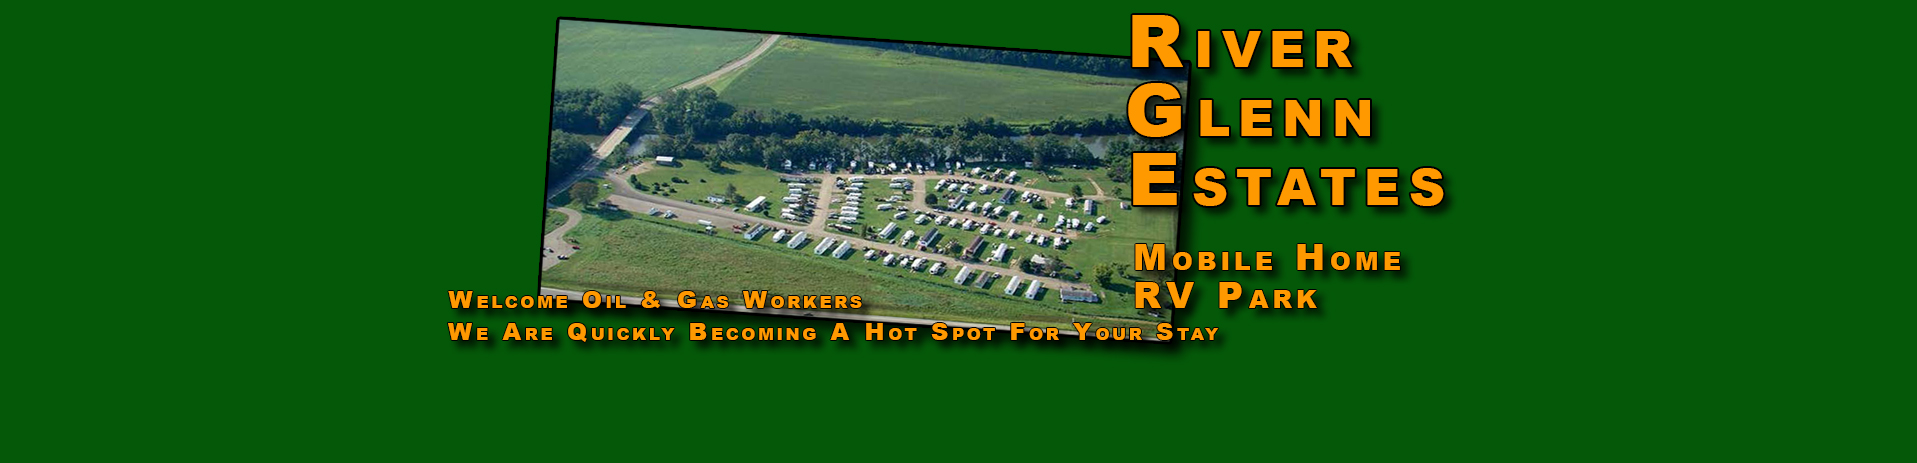 River Glenn Estates Mobile Home / RV Park, Fresno, Ohio 43824